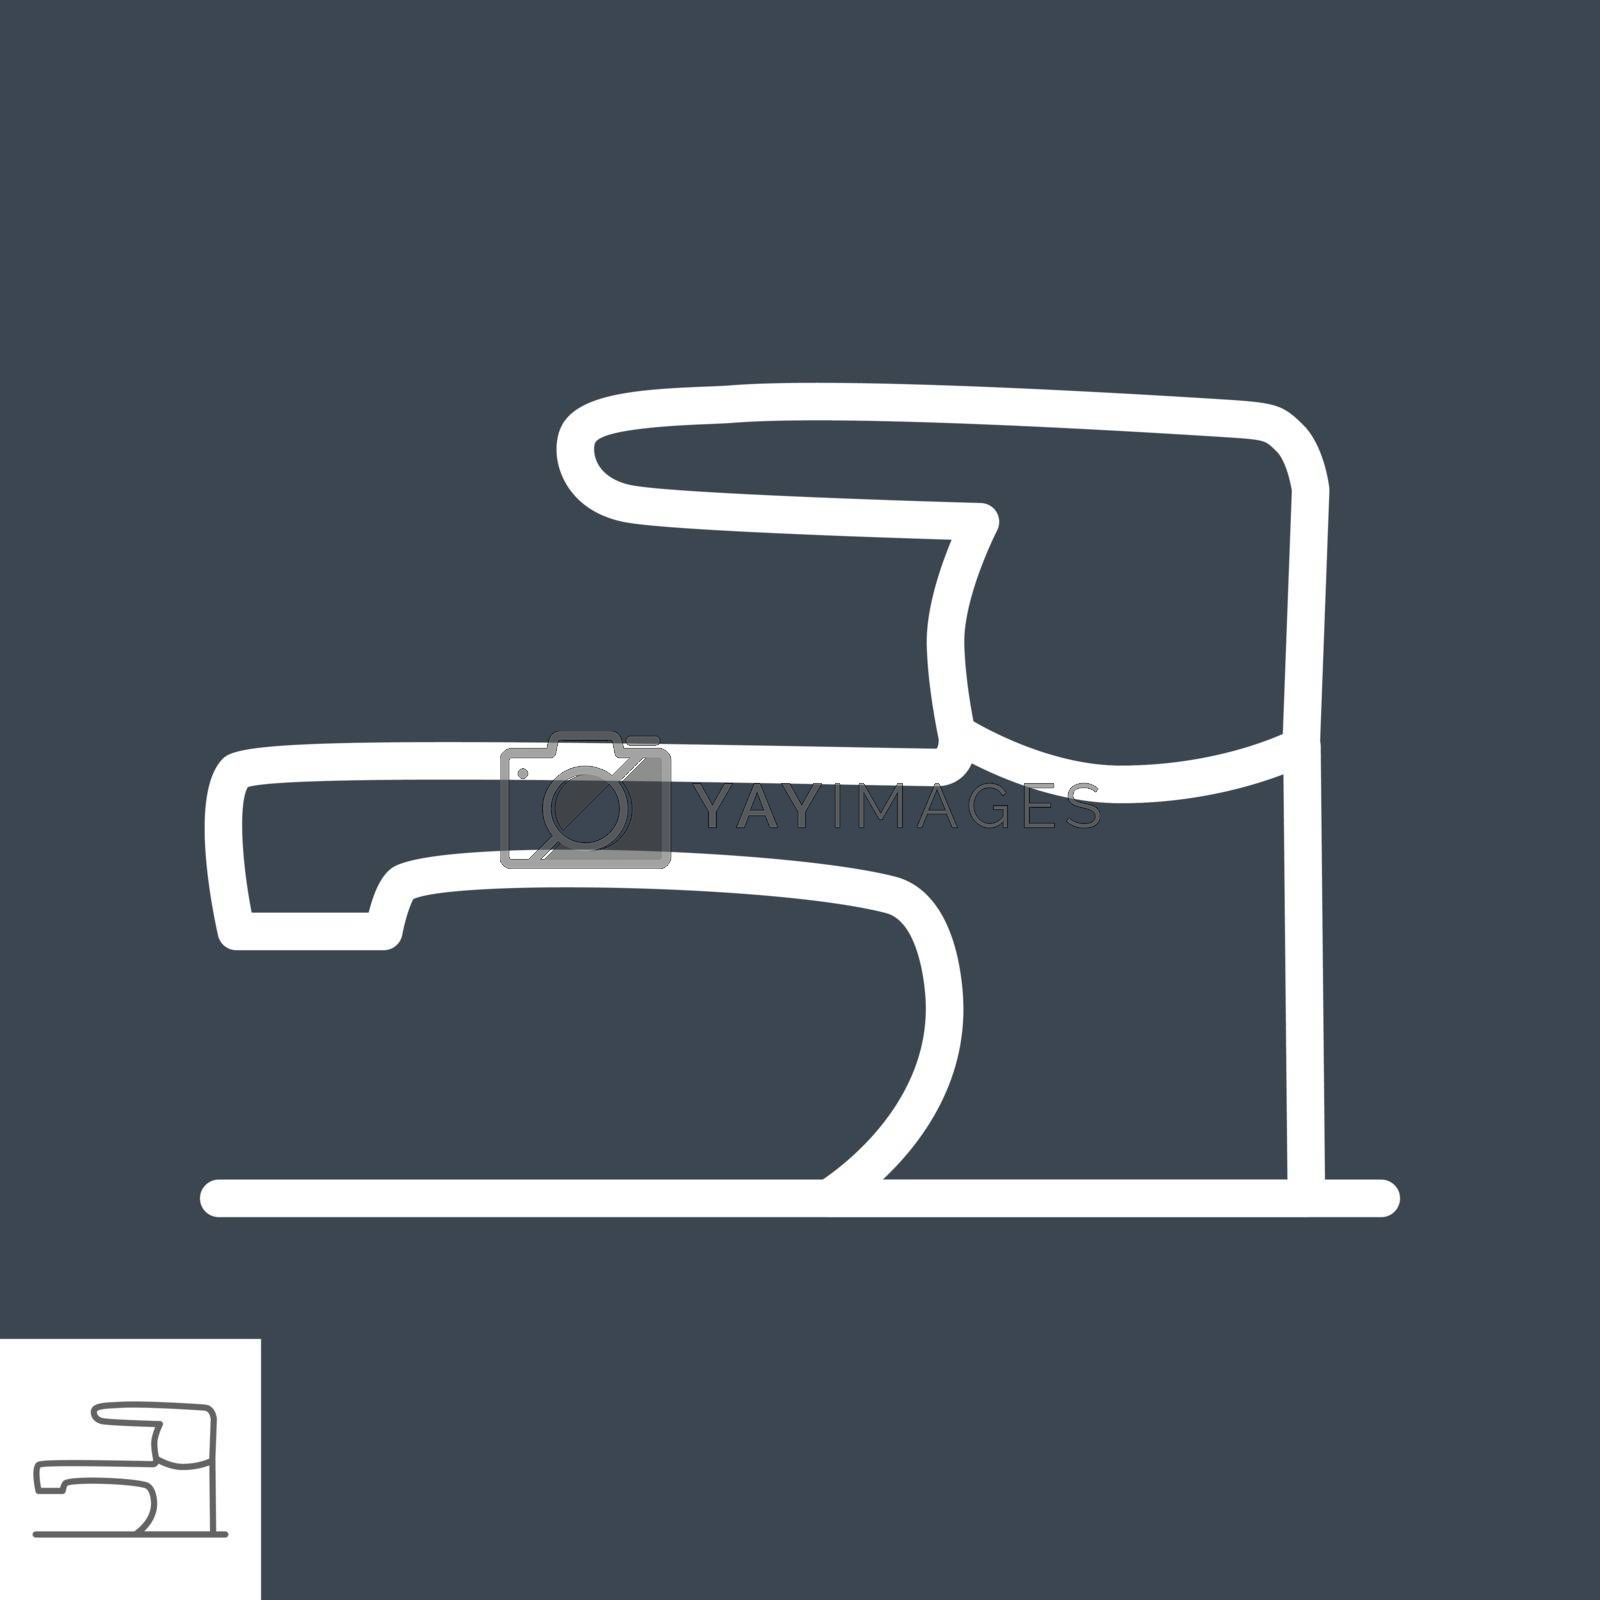 Tap Thin Line Vector Icon Isolated on the Black Background.